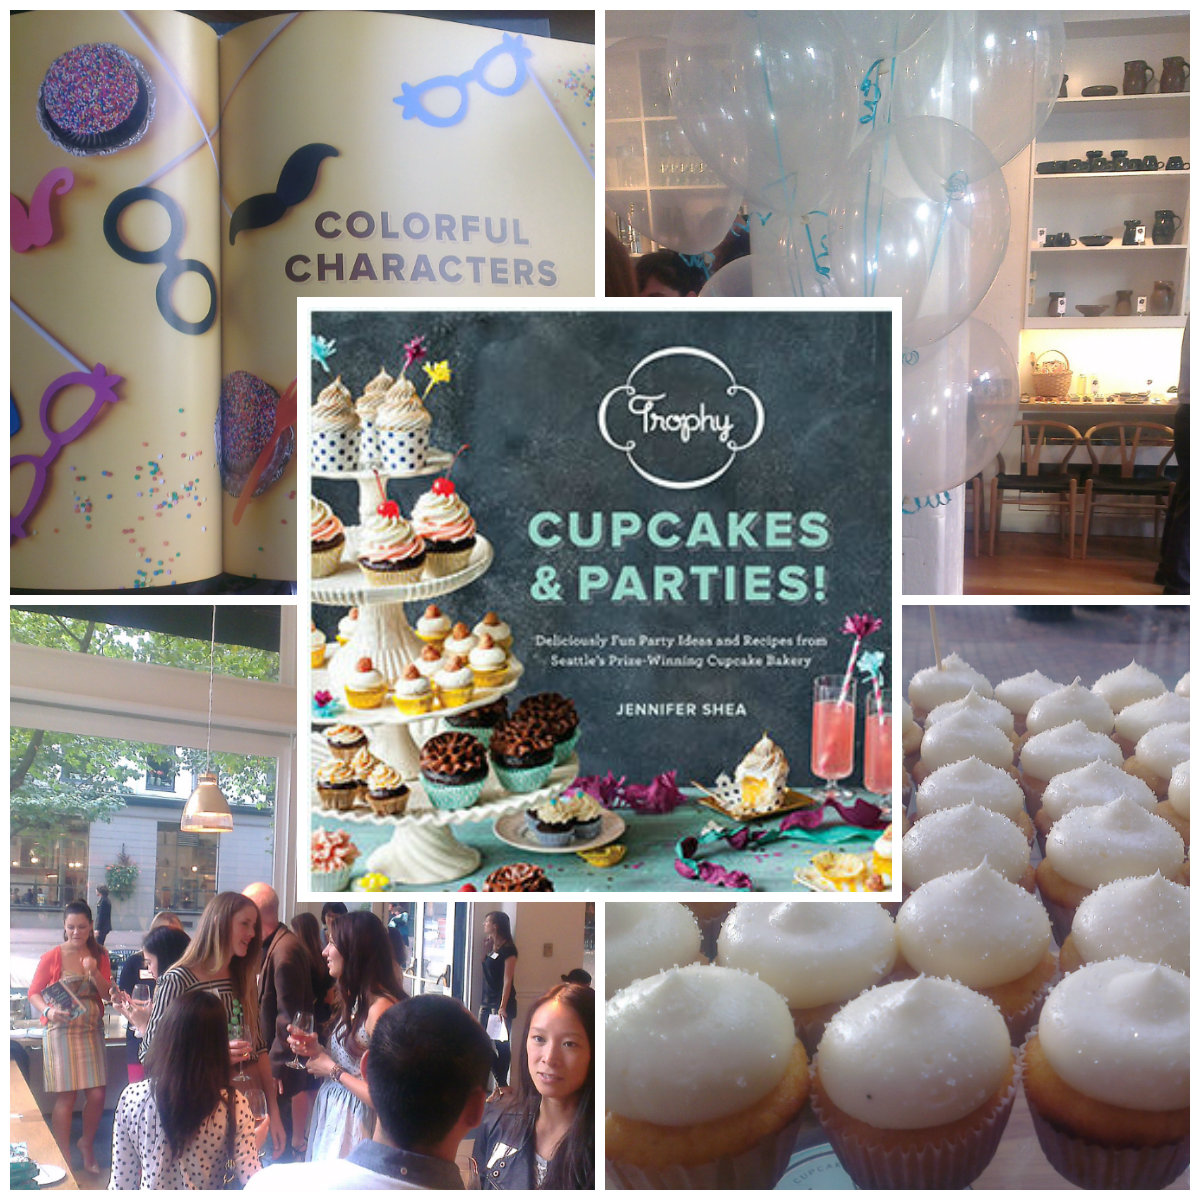 trophy cupcakes and parties book launch | the geeky hostess